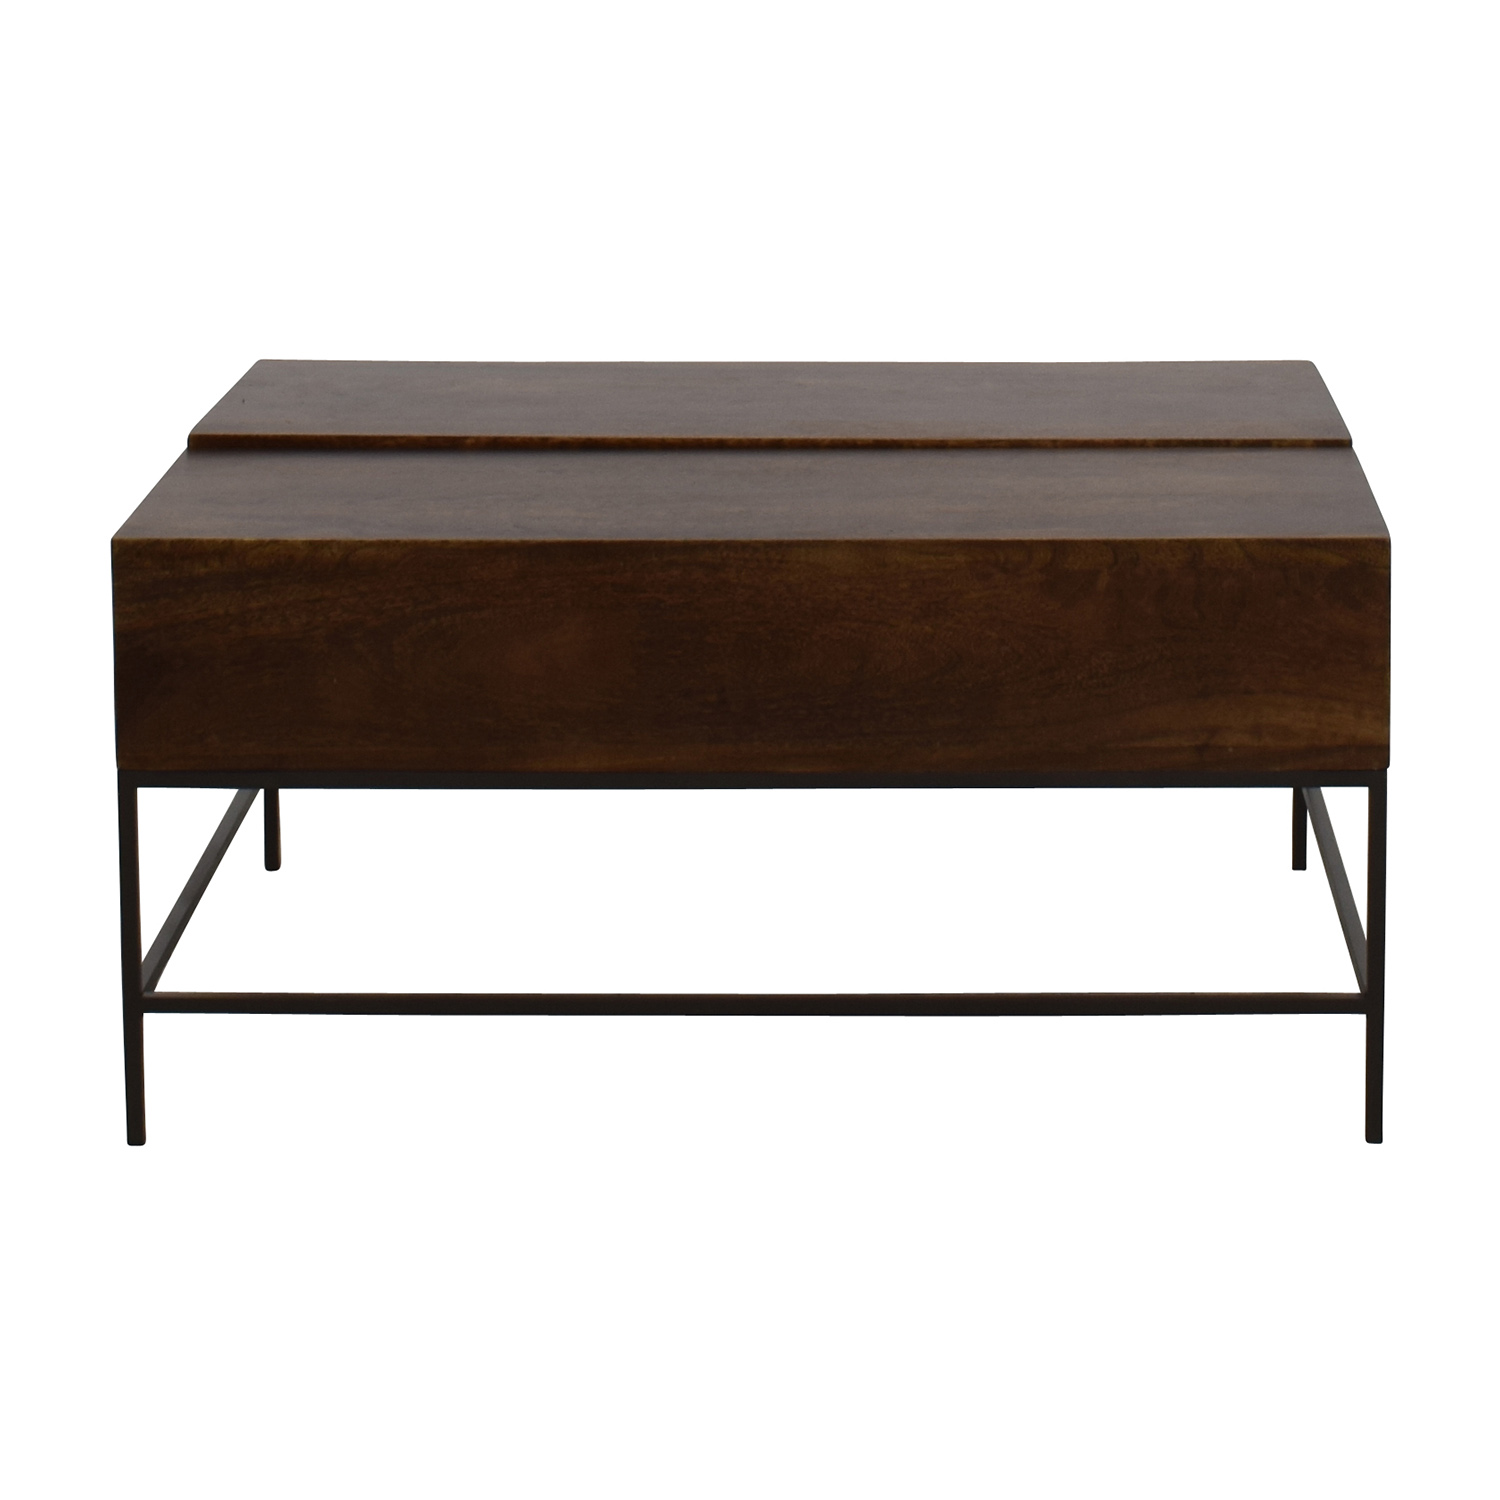 West Elm West Elm Industrial Storage Coffee Table nyc